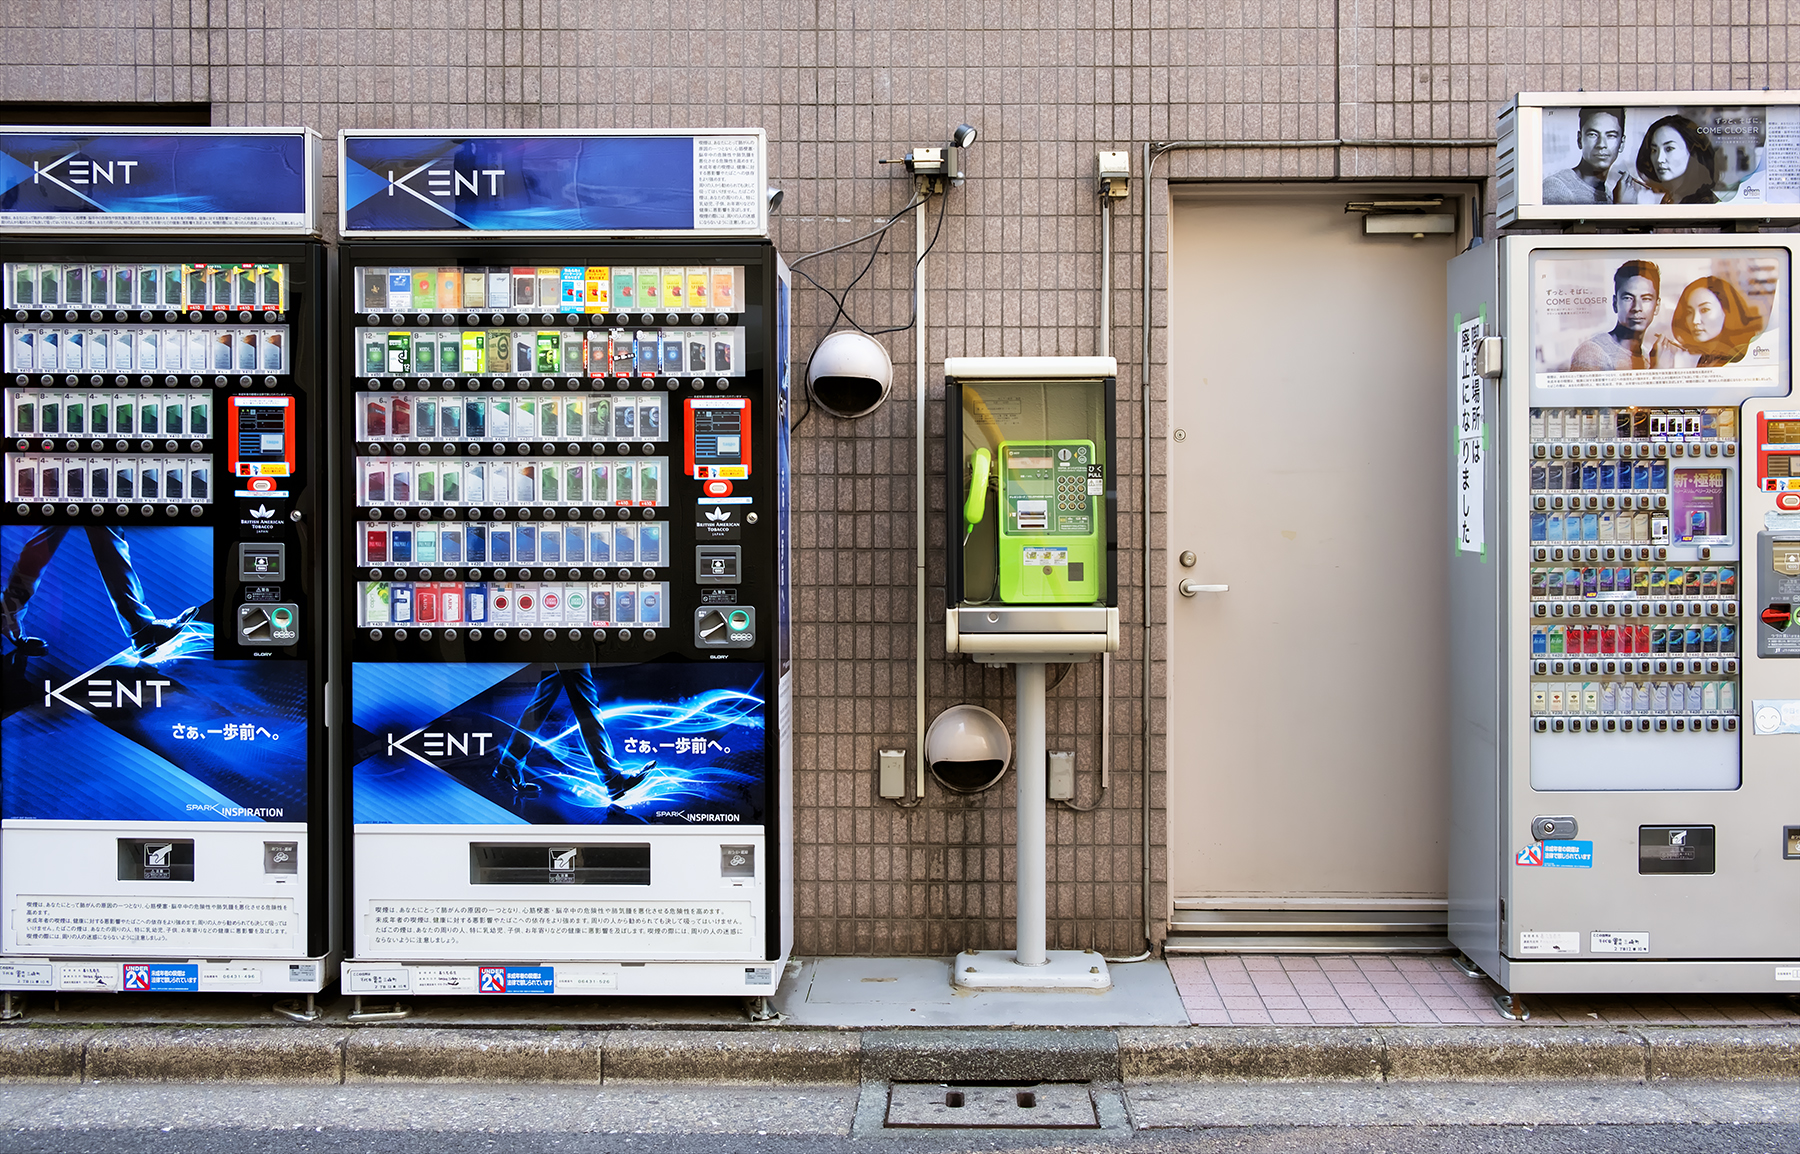 Doug_Caplan_Japanese-Vending-Machines_Untitled_05.jpg